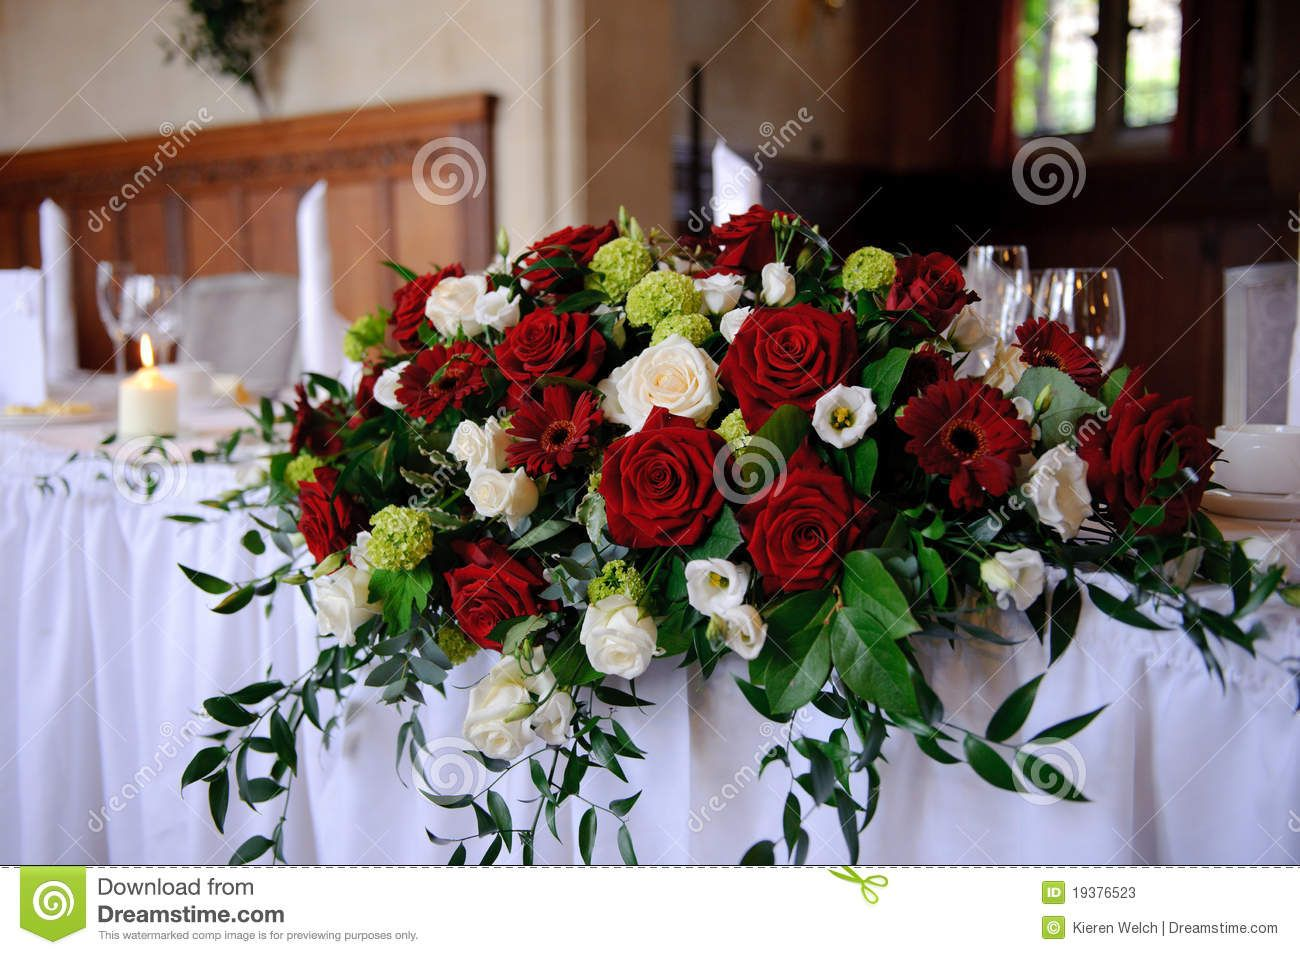 Wedding Table Red Wedding Table Decorations rose table centerpieces google search wedding ideas red white flowers roses decorate real touch blue anemones amp spring artificial bouquet